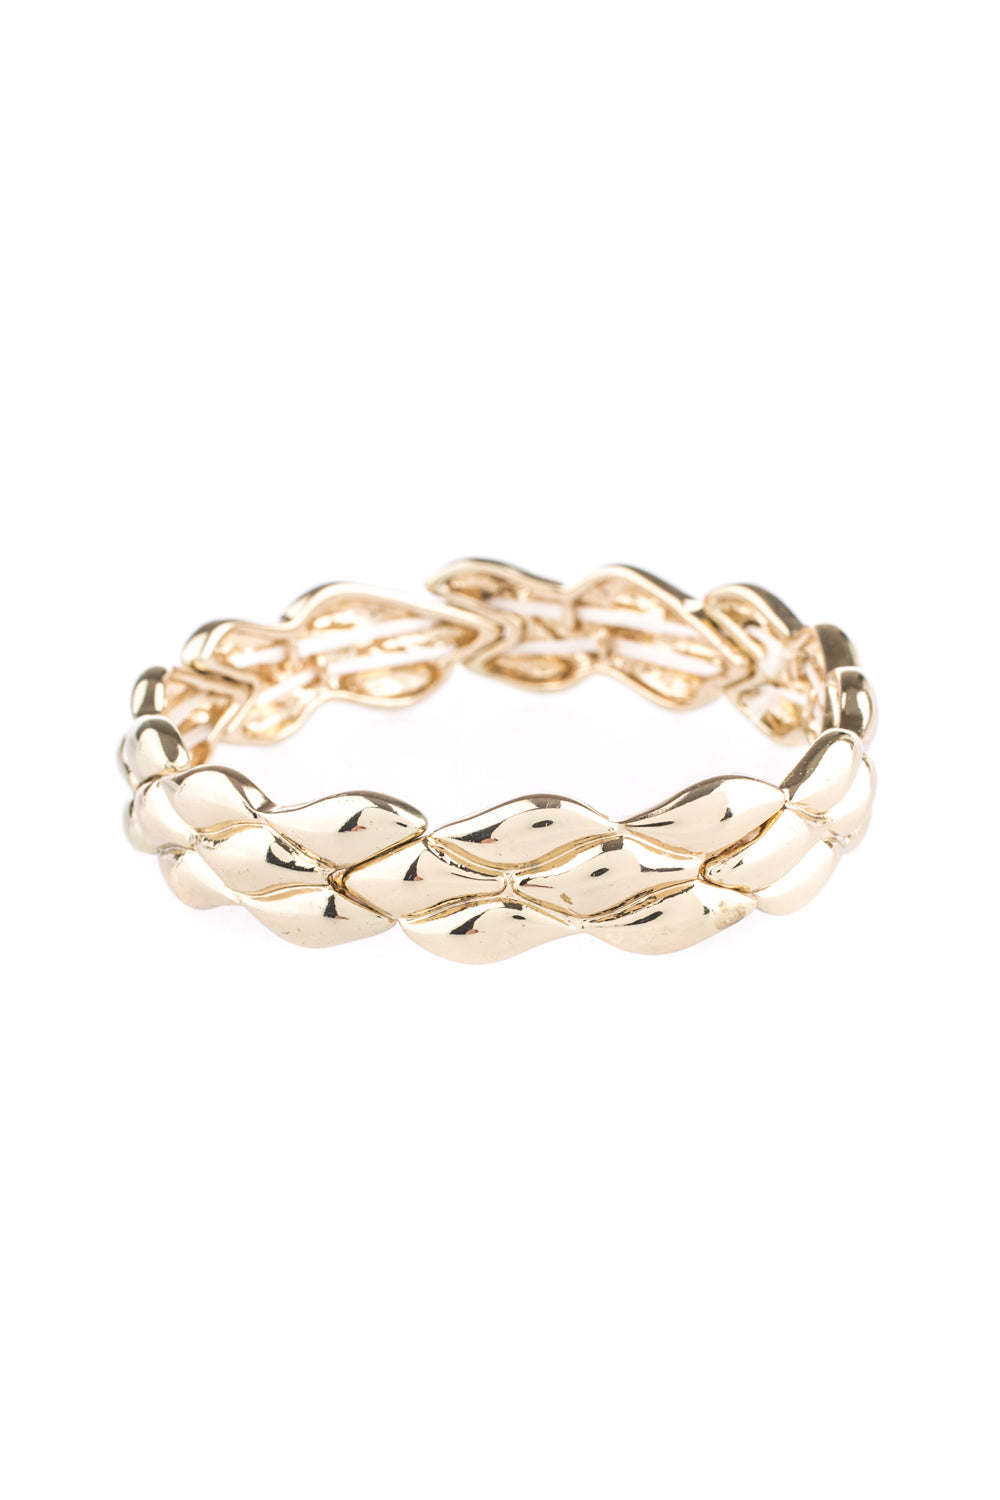 Type 3 Braided Halo Bracelet